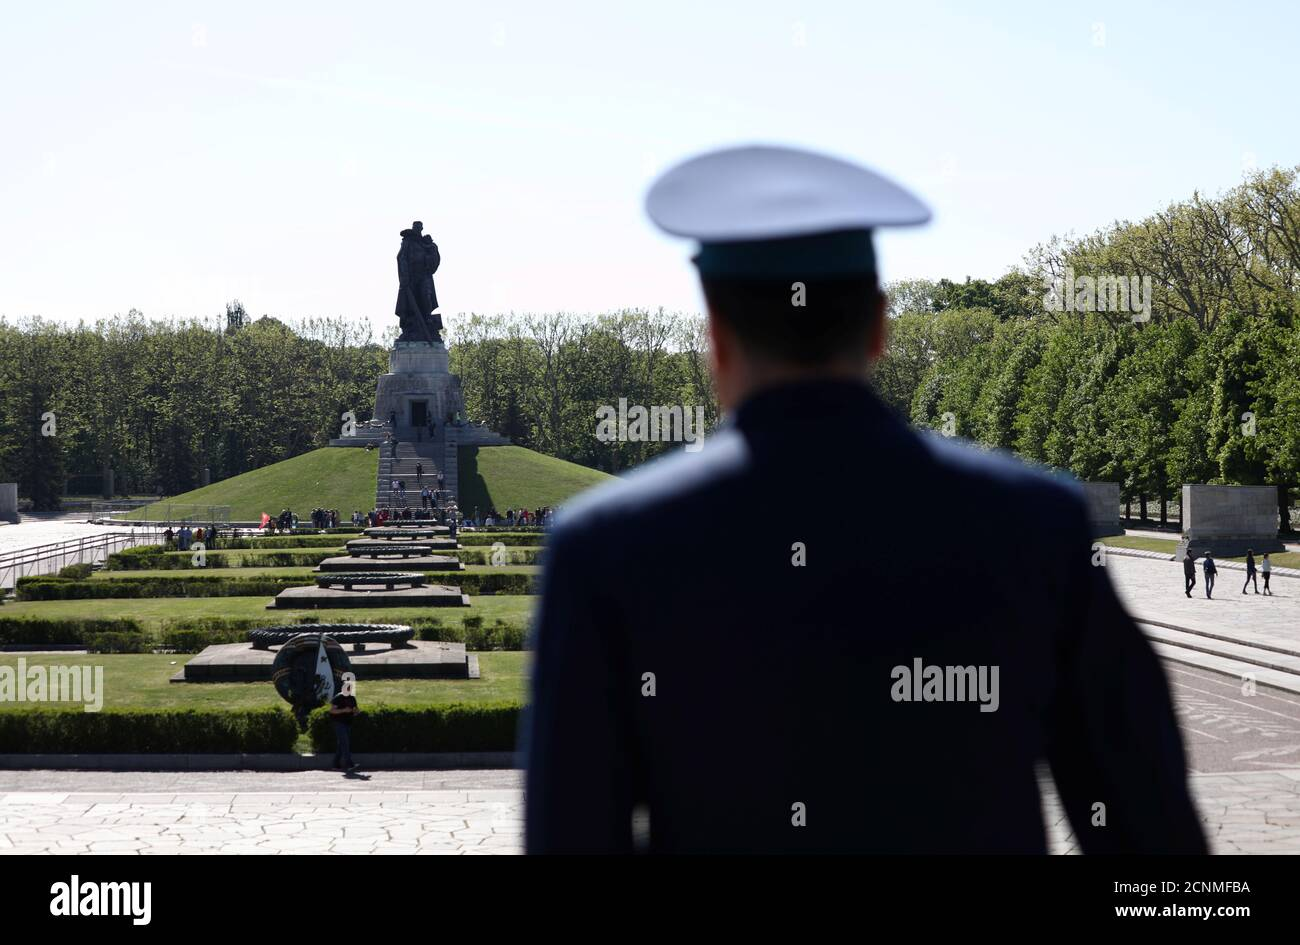 People gather at the Soviet War Memorial at Treptower Park, to mark Victory Day and the 75th anniversary of the end of World War Two, in Berlin, Germany May 9, 2020. REUTERS/Christian Mang Stock Photo